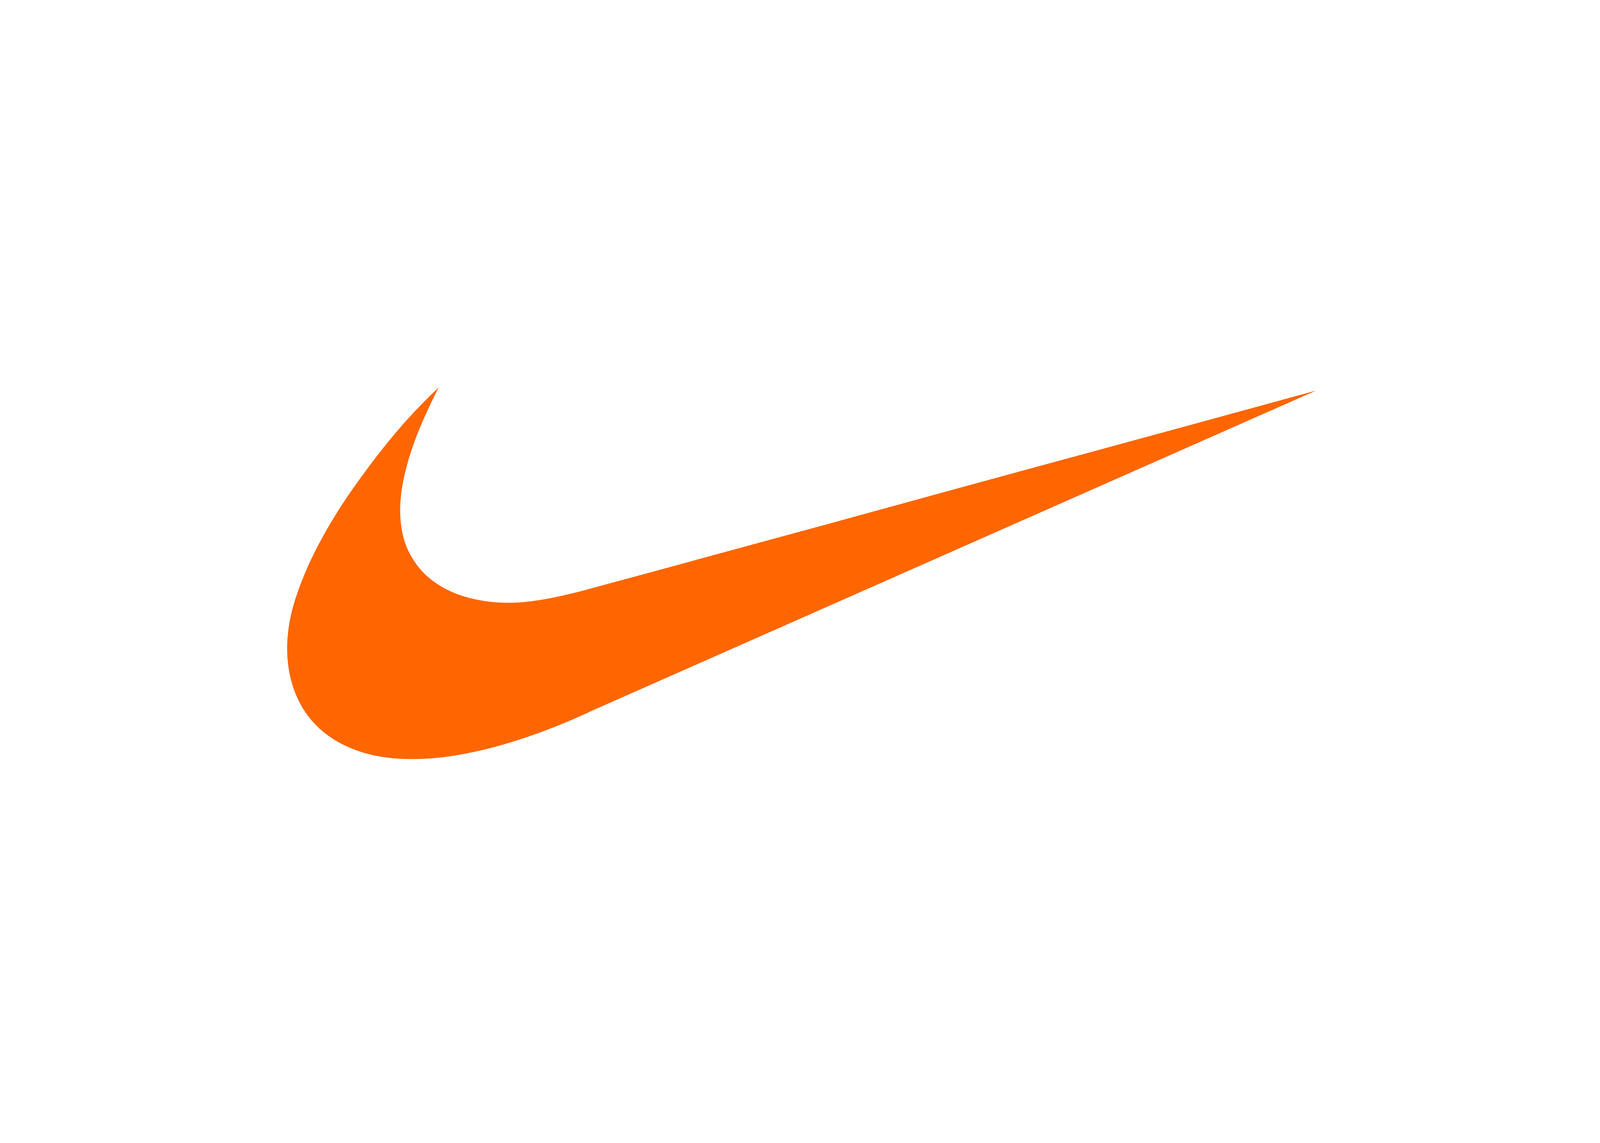 Related Logos For Nike